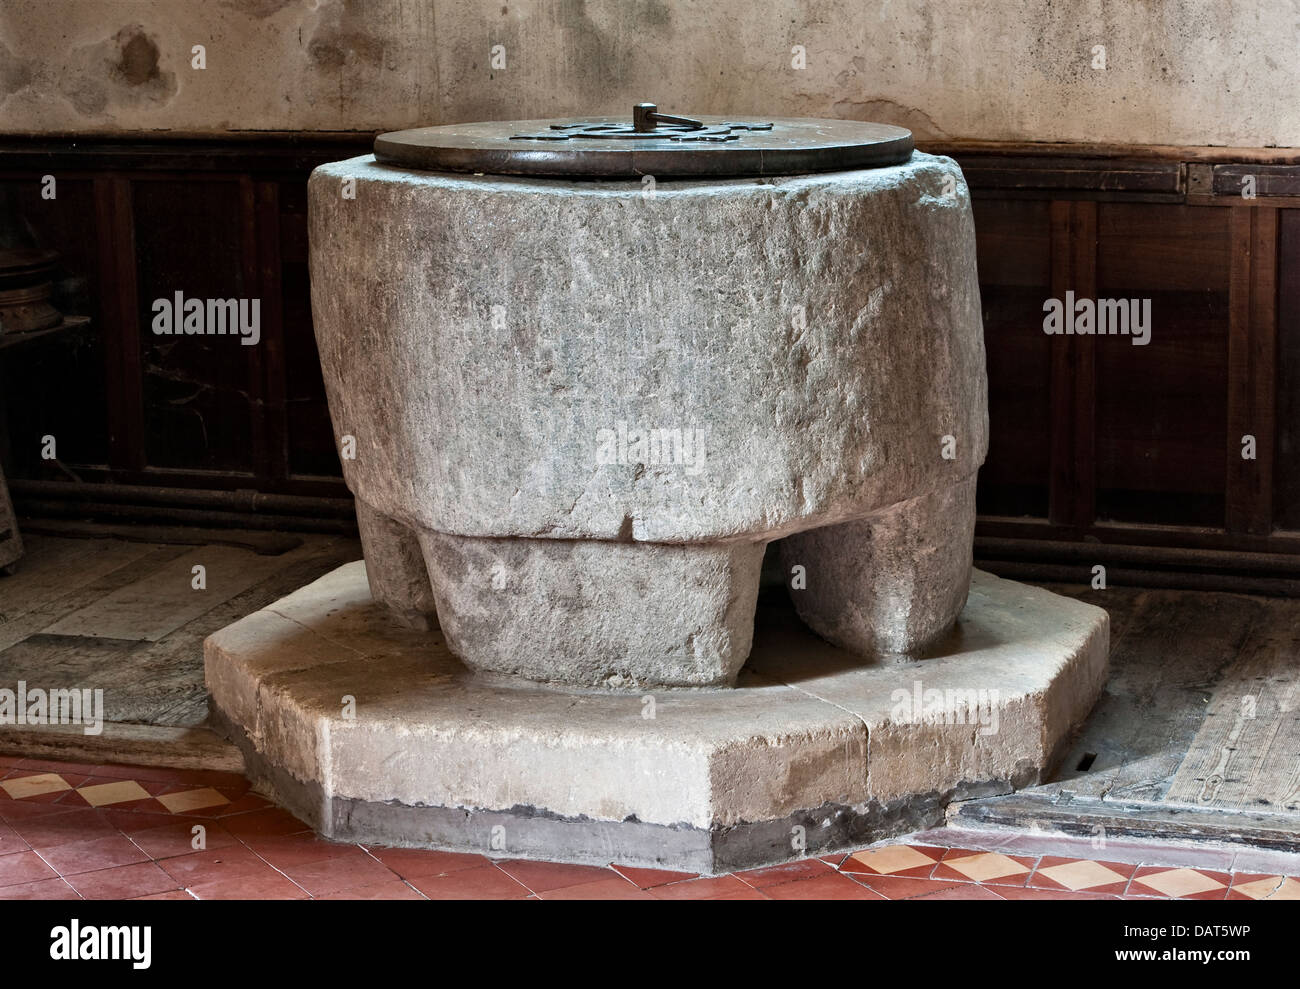 St Stephen's Church, Old Radnor, Powys. The ancient stone font said to date to the 8th century, possibly an oldStock Photo